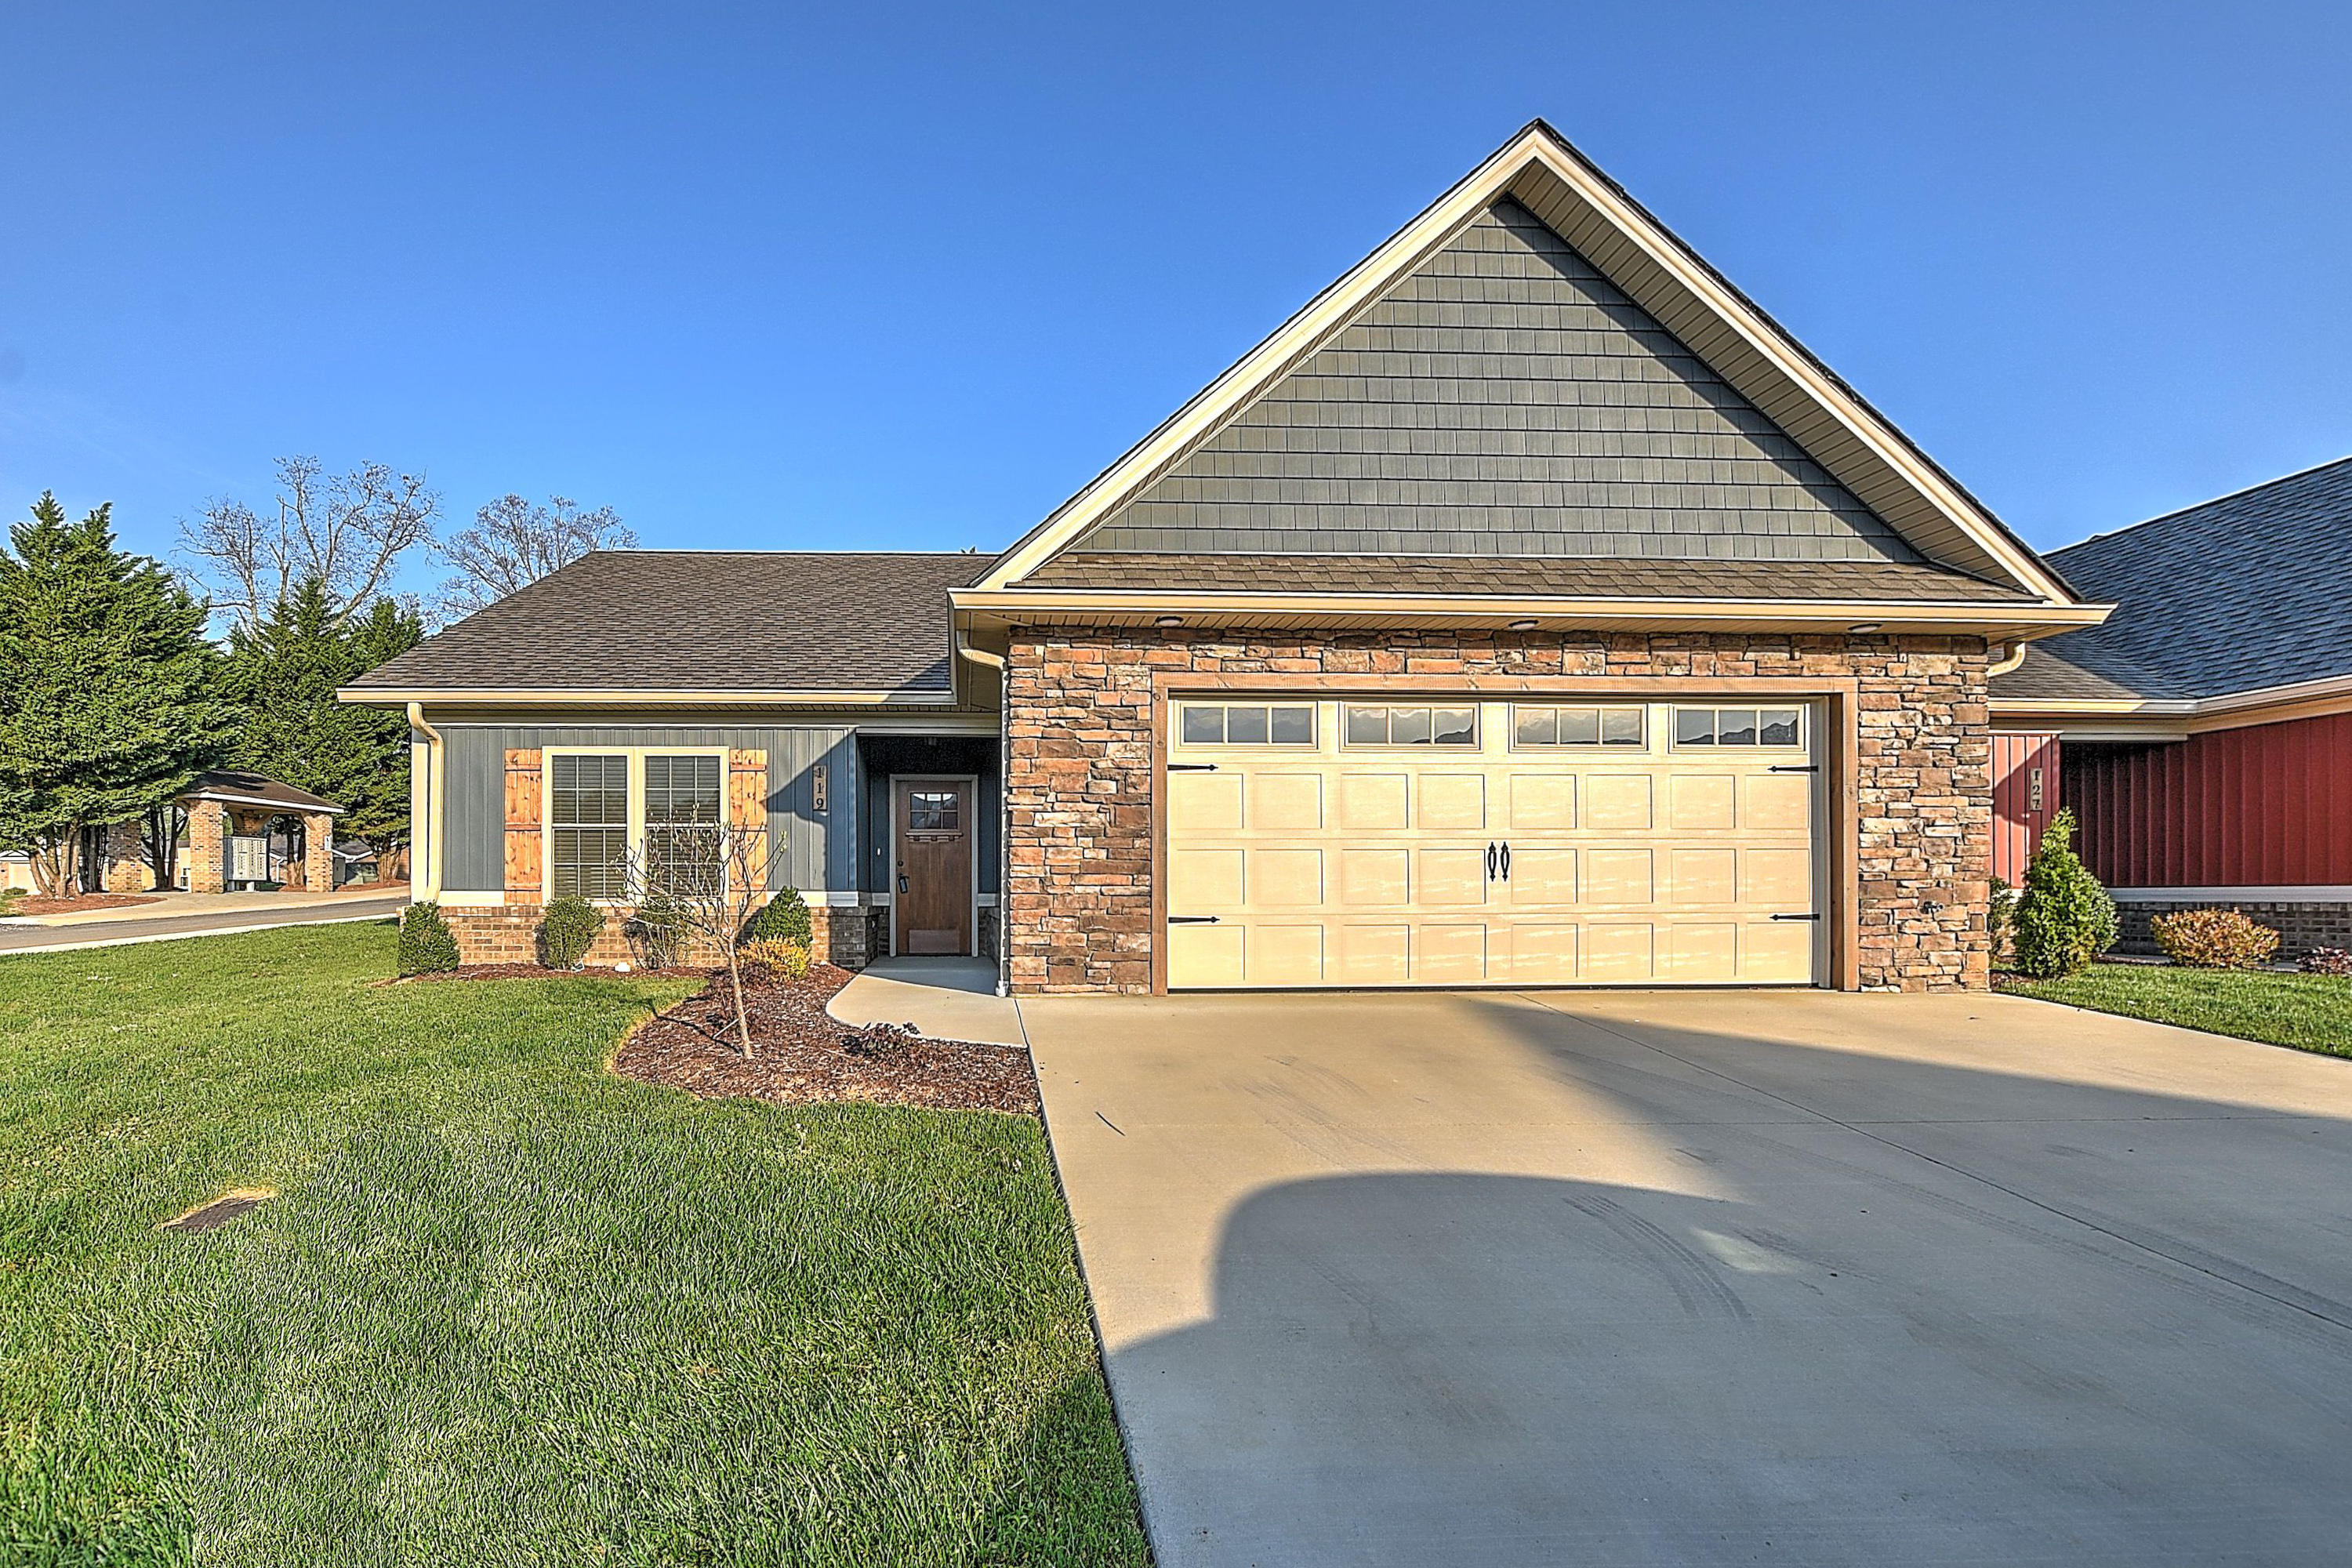 119 Hacker Martin Drive, Johnson City, Tennessee 37615, 2 Bedrooms Bedrooms, ,2 BathroomsBathrooms,Residential,For Sale,119 Hacker Martin Drive,9921043